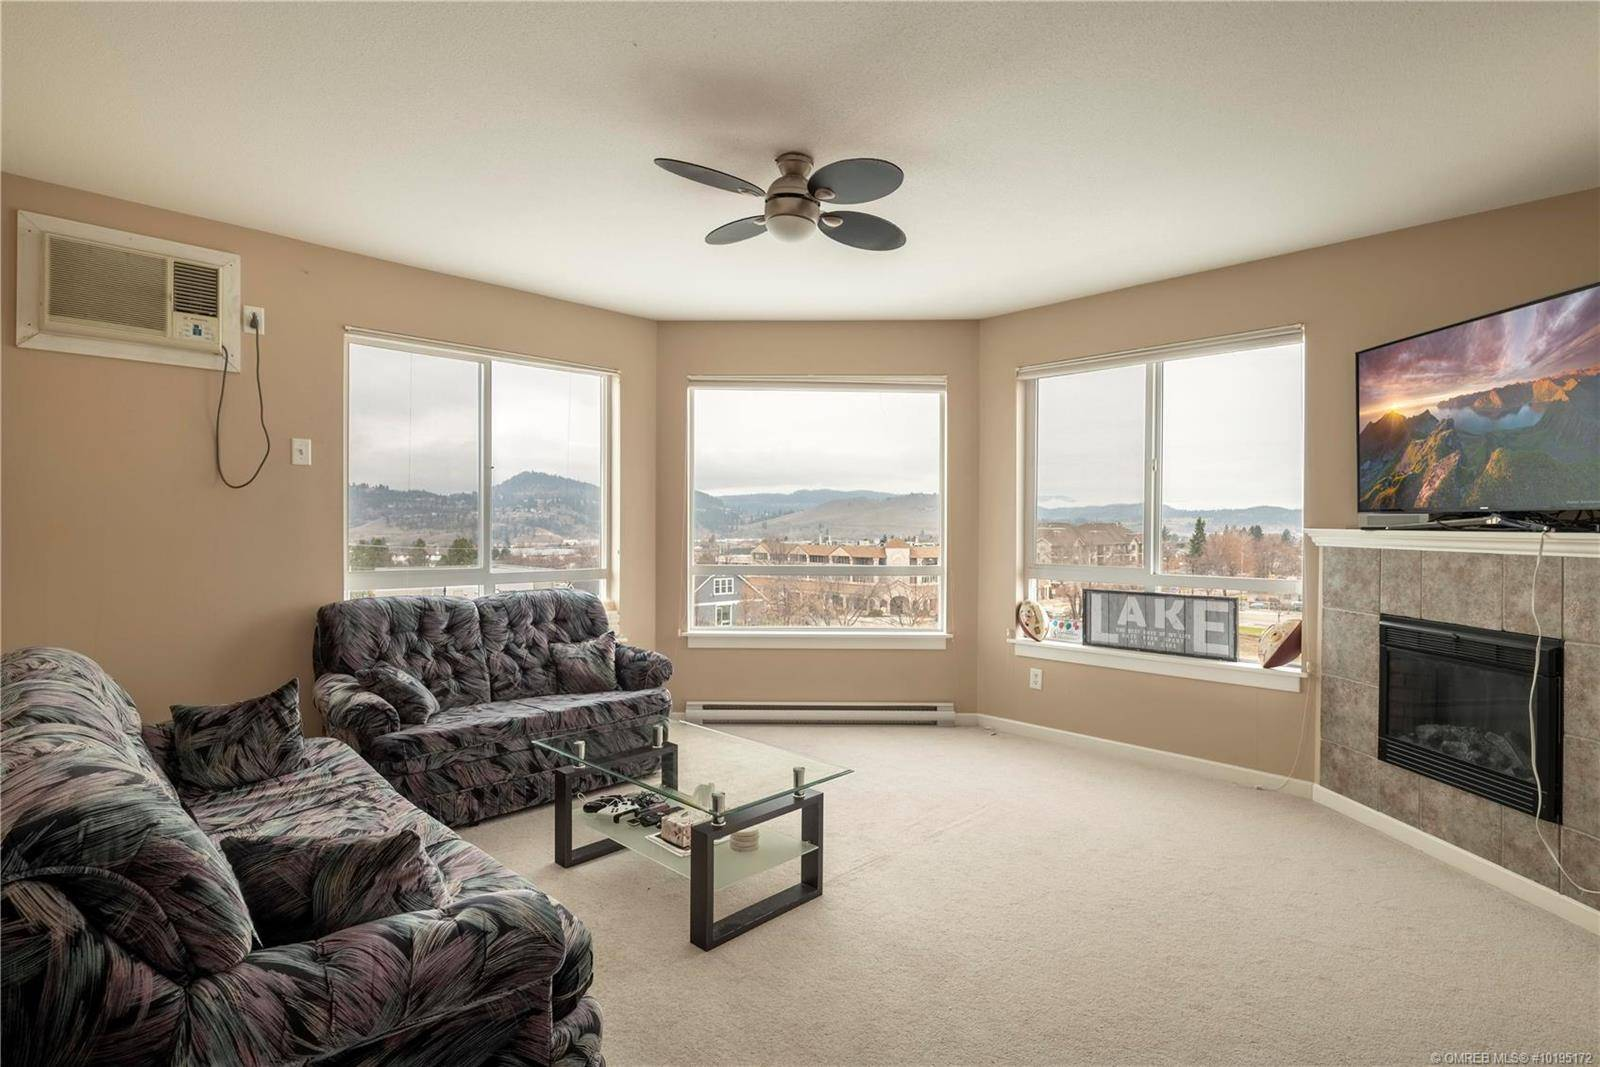 Condo for sale at 140 Asher Rd Unit 411 Kelowna British Columbia - MLS: 10195172